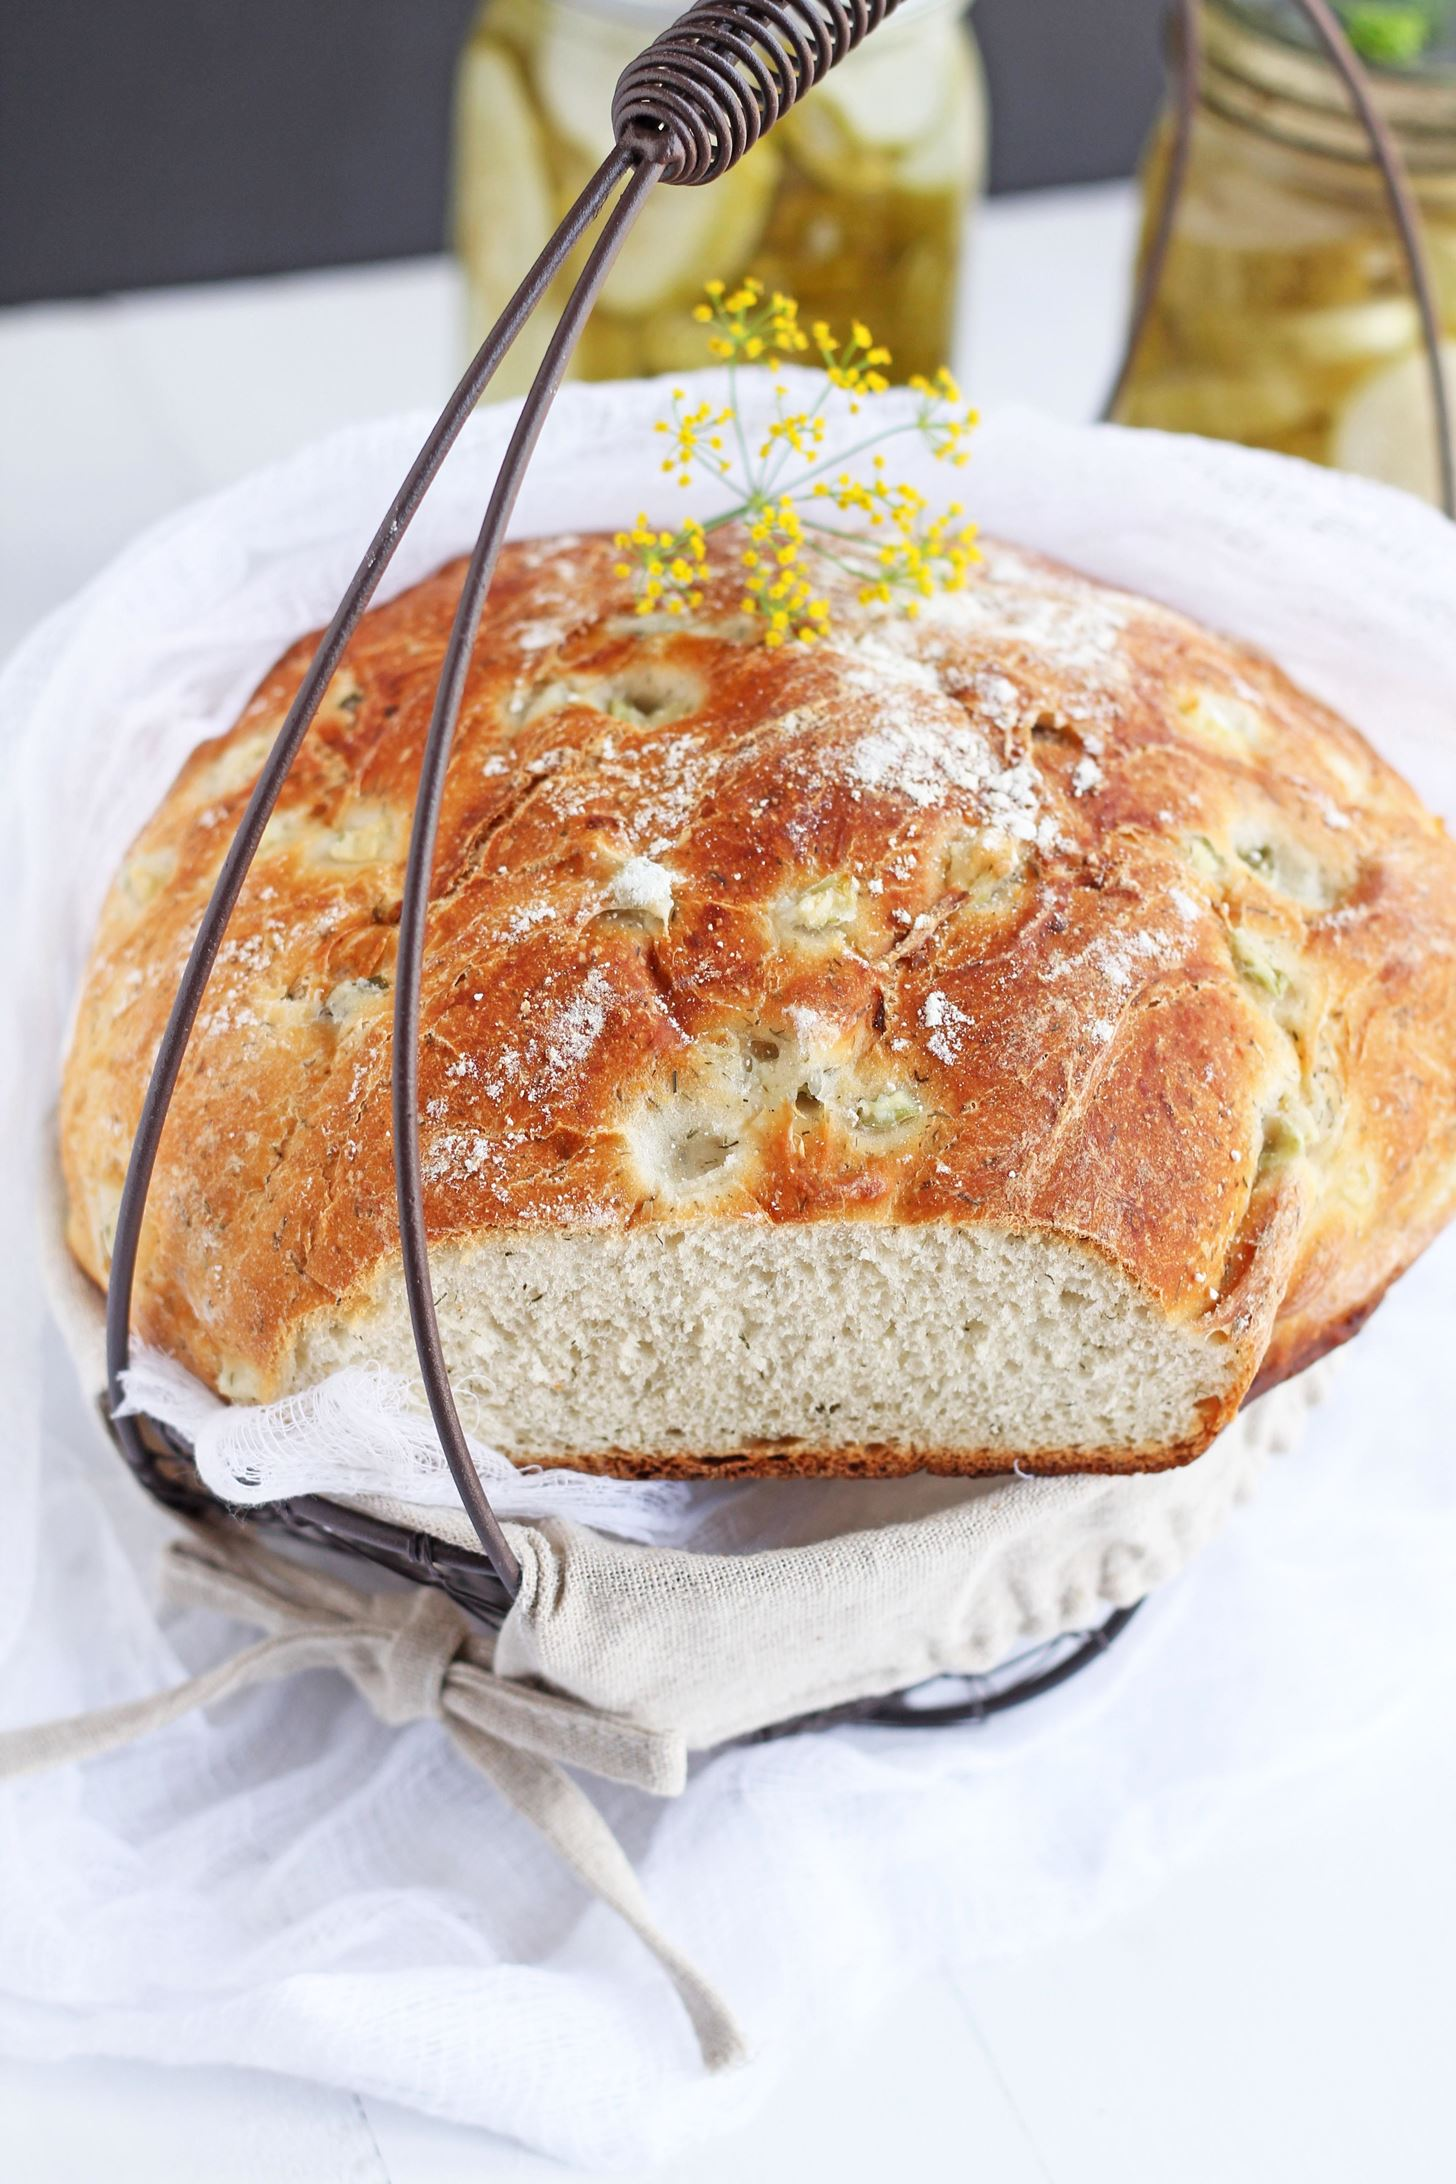 Use Leftover Pickle Juice When Making Dill Bread for Increased Flavor